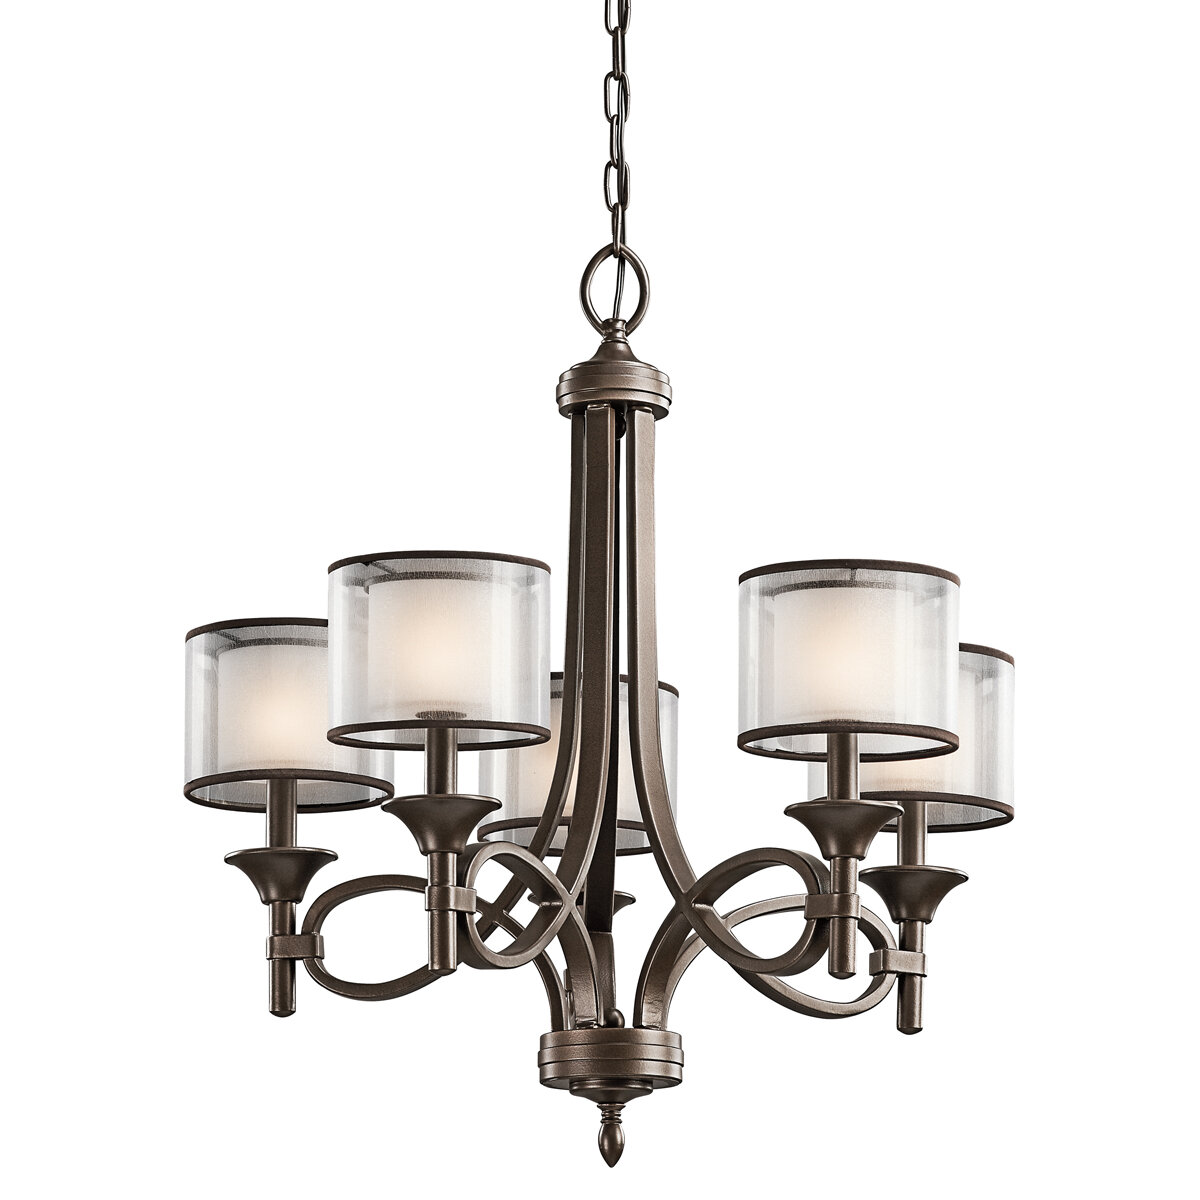 Darby home co lightle 5 light drum chandelier reviews wayfair